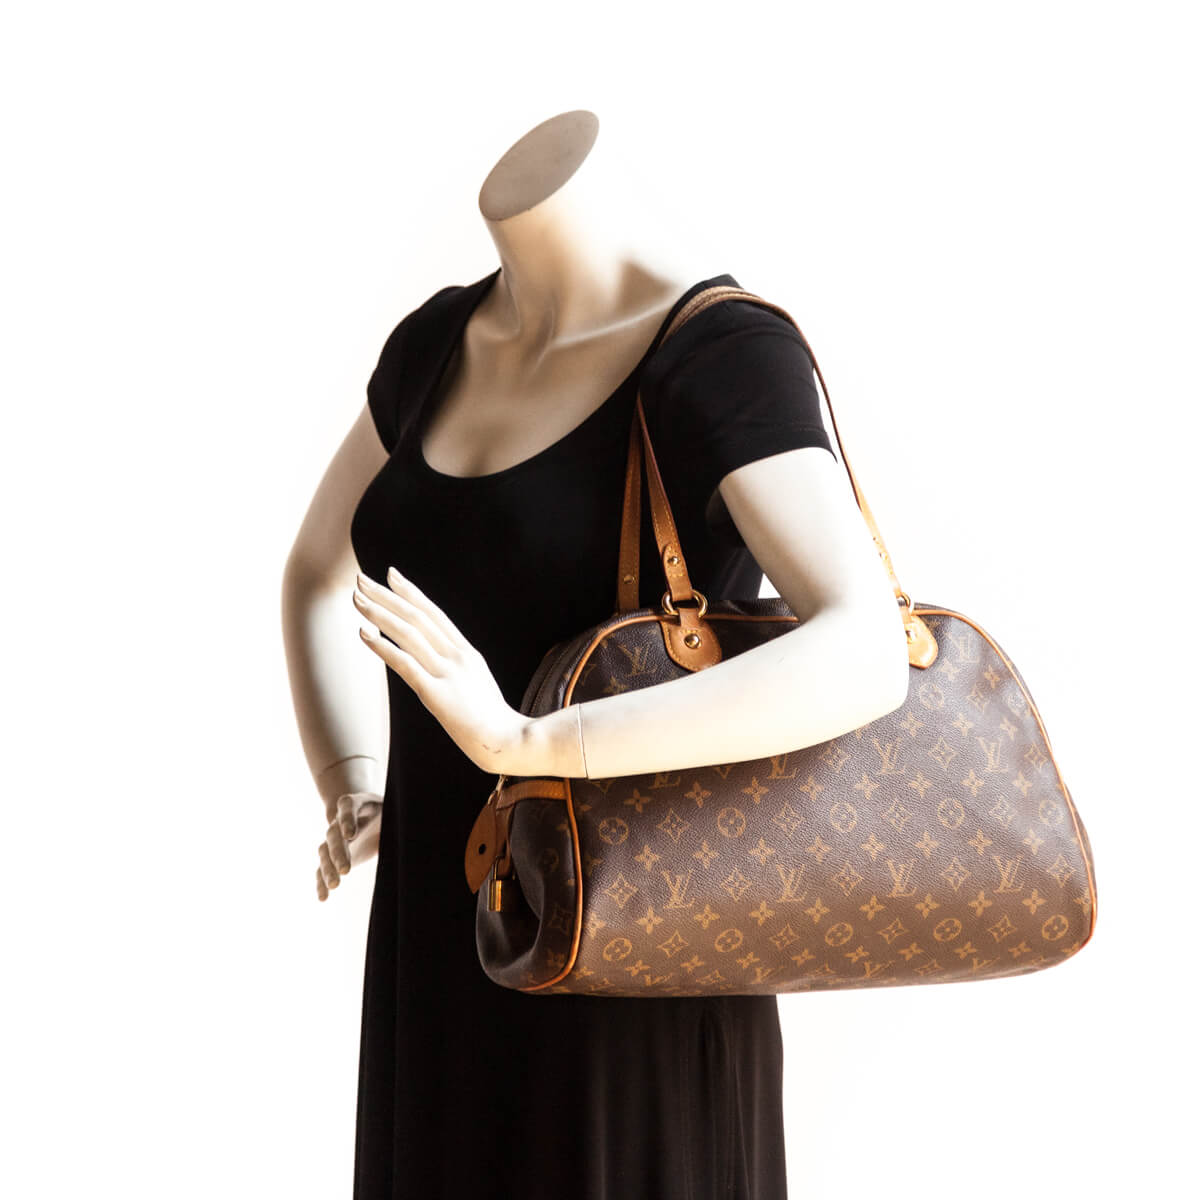 3009deb3b331 ... Louis Vuitton Monogram Montorgueil GM - LOVE that BAG - Preowned  Authentic Designer Handbags